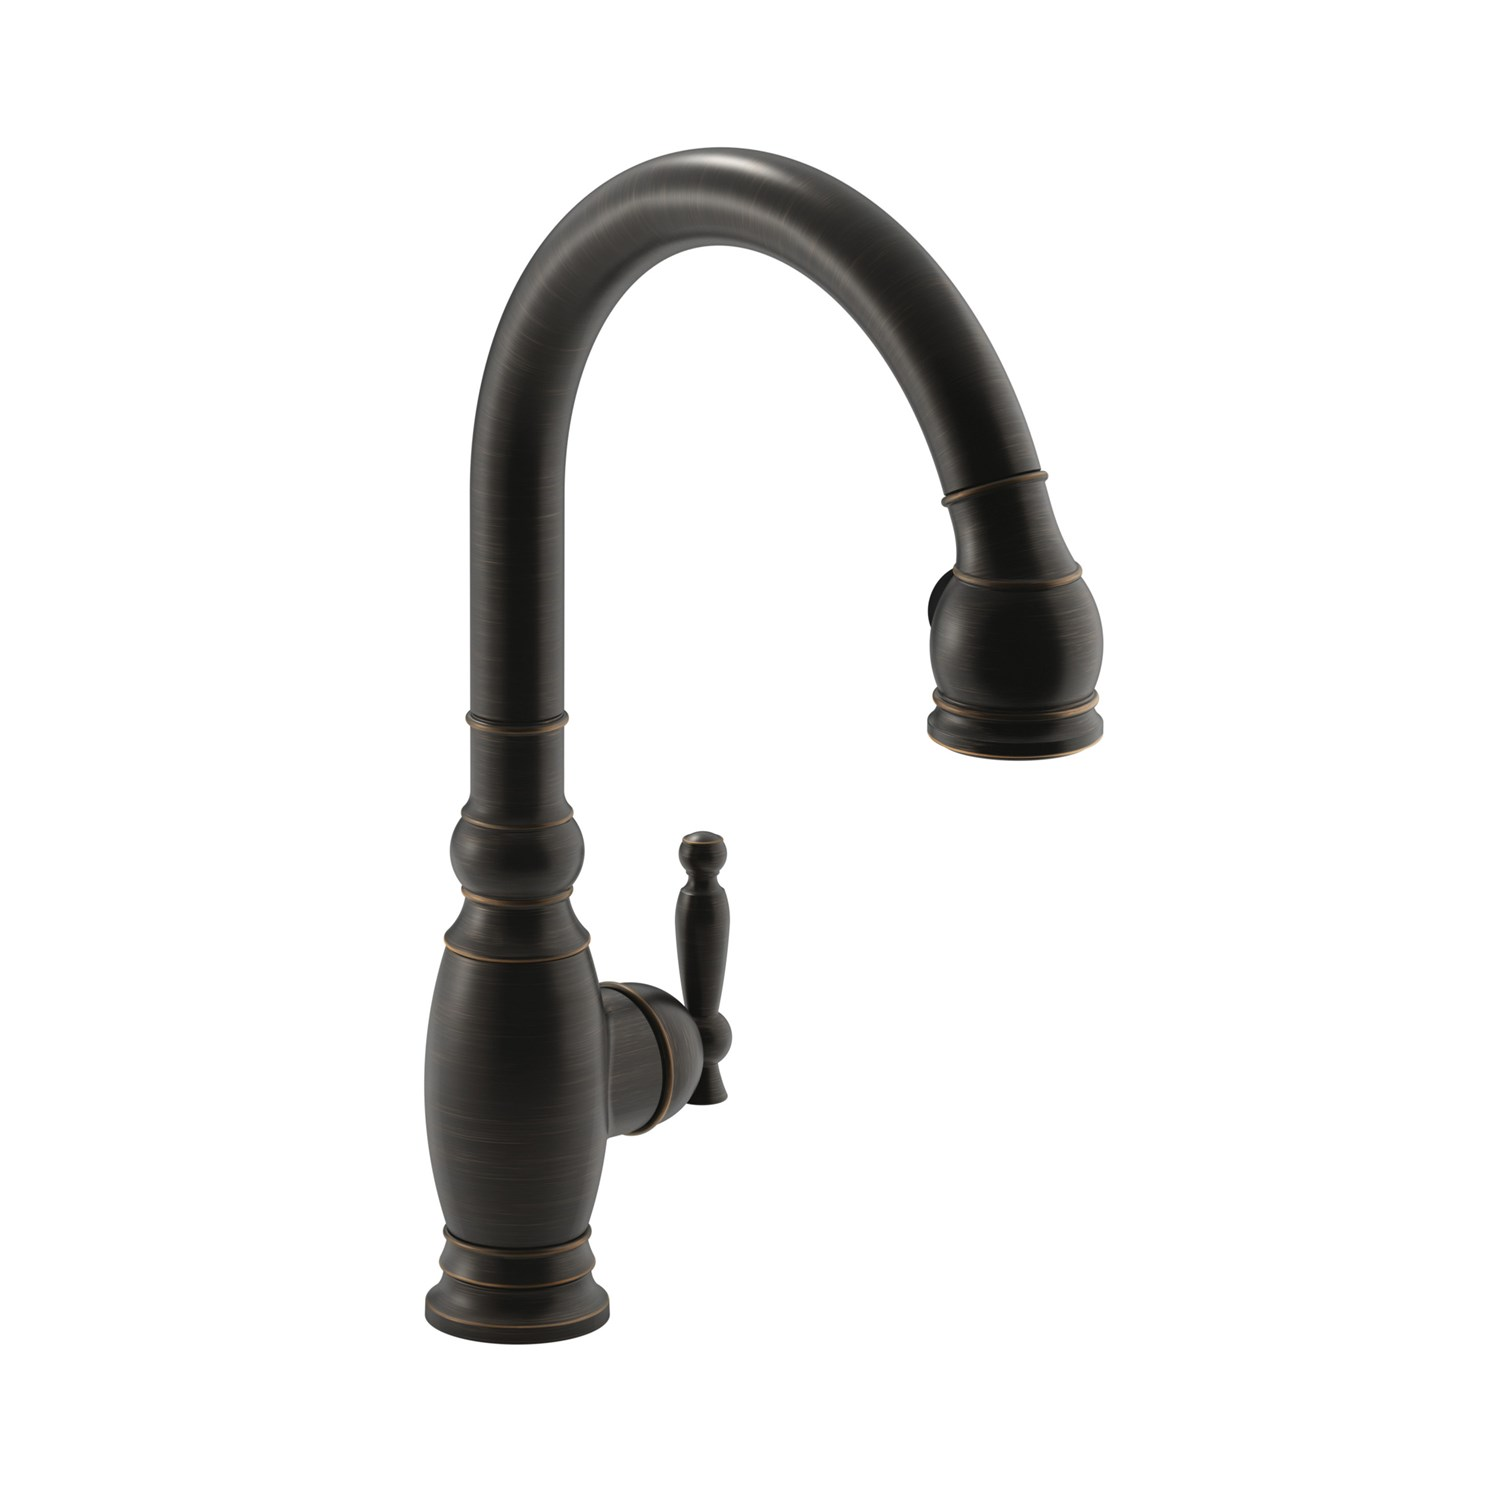 Cute delta cassidy kitchen faucet for kitchen faucet ideas with delta single handle kitchen faucet with spray